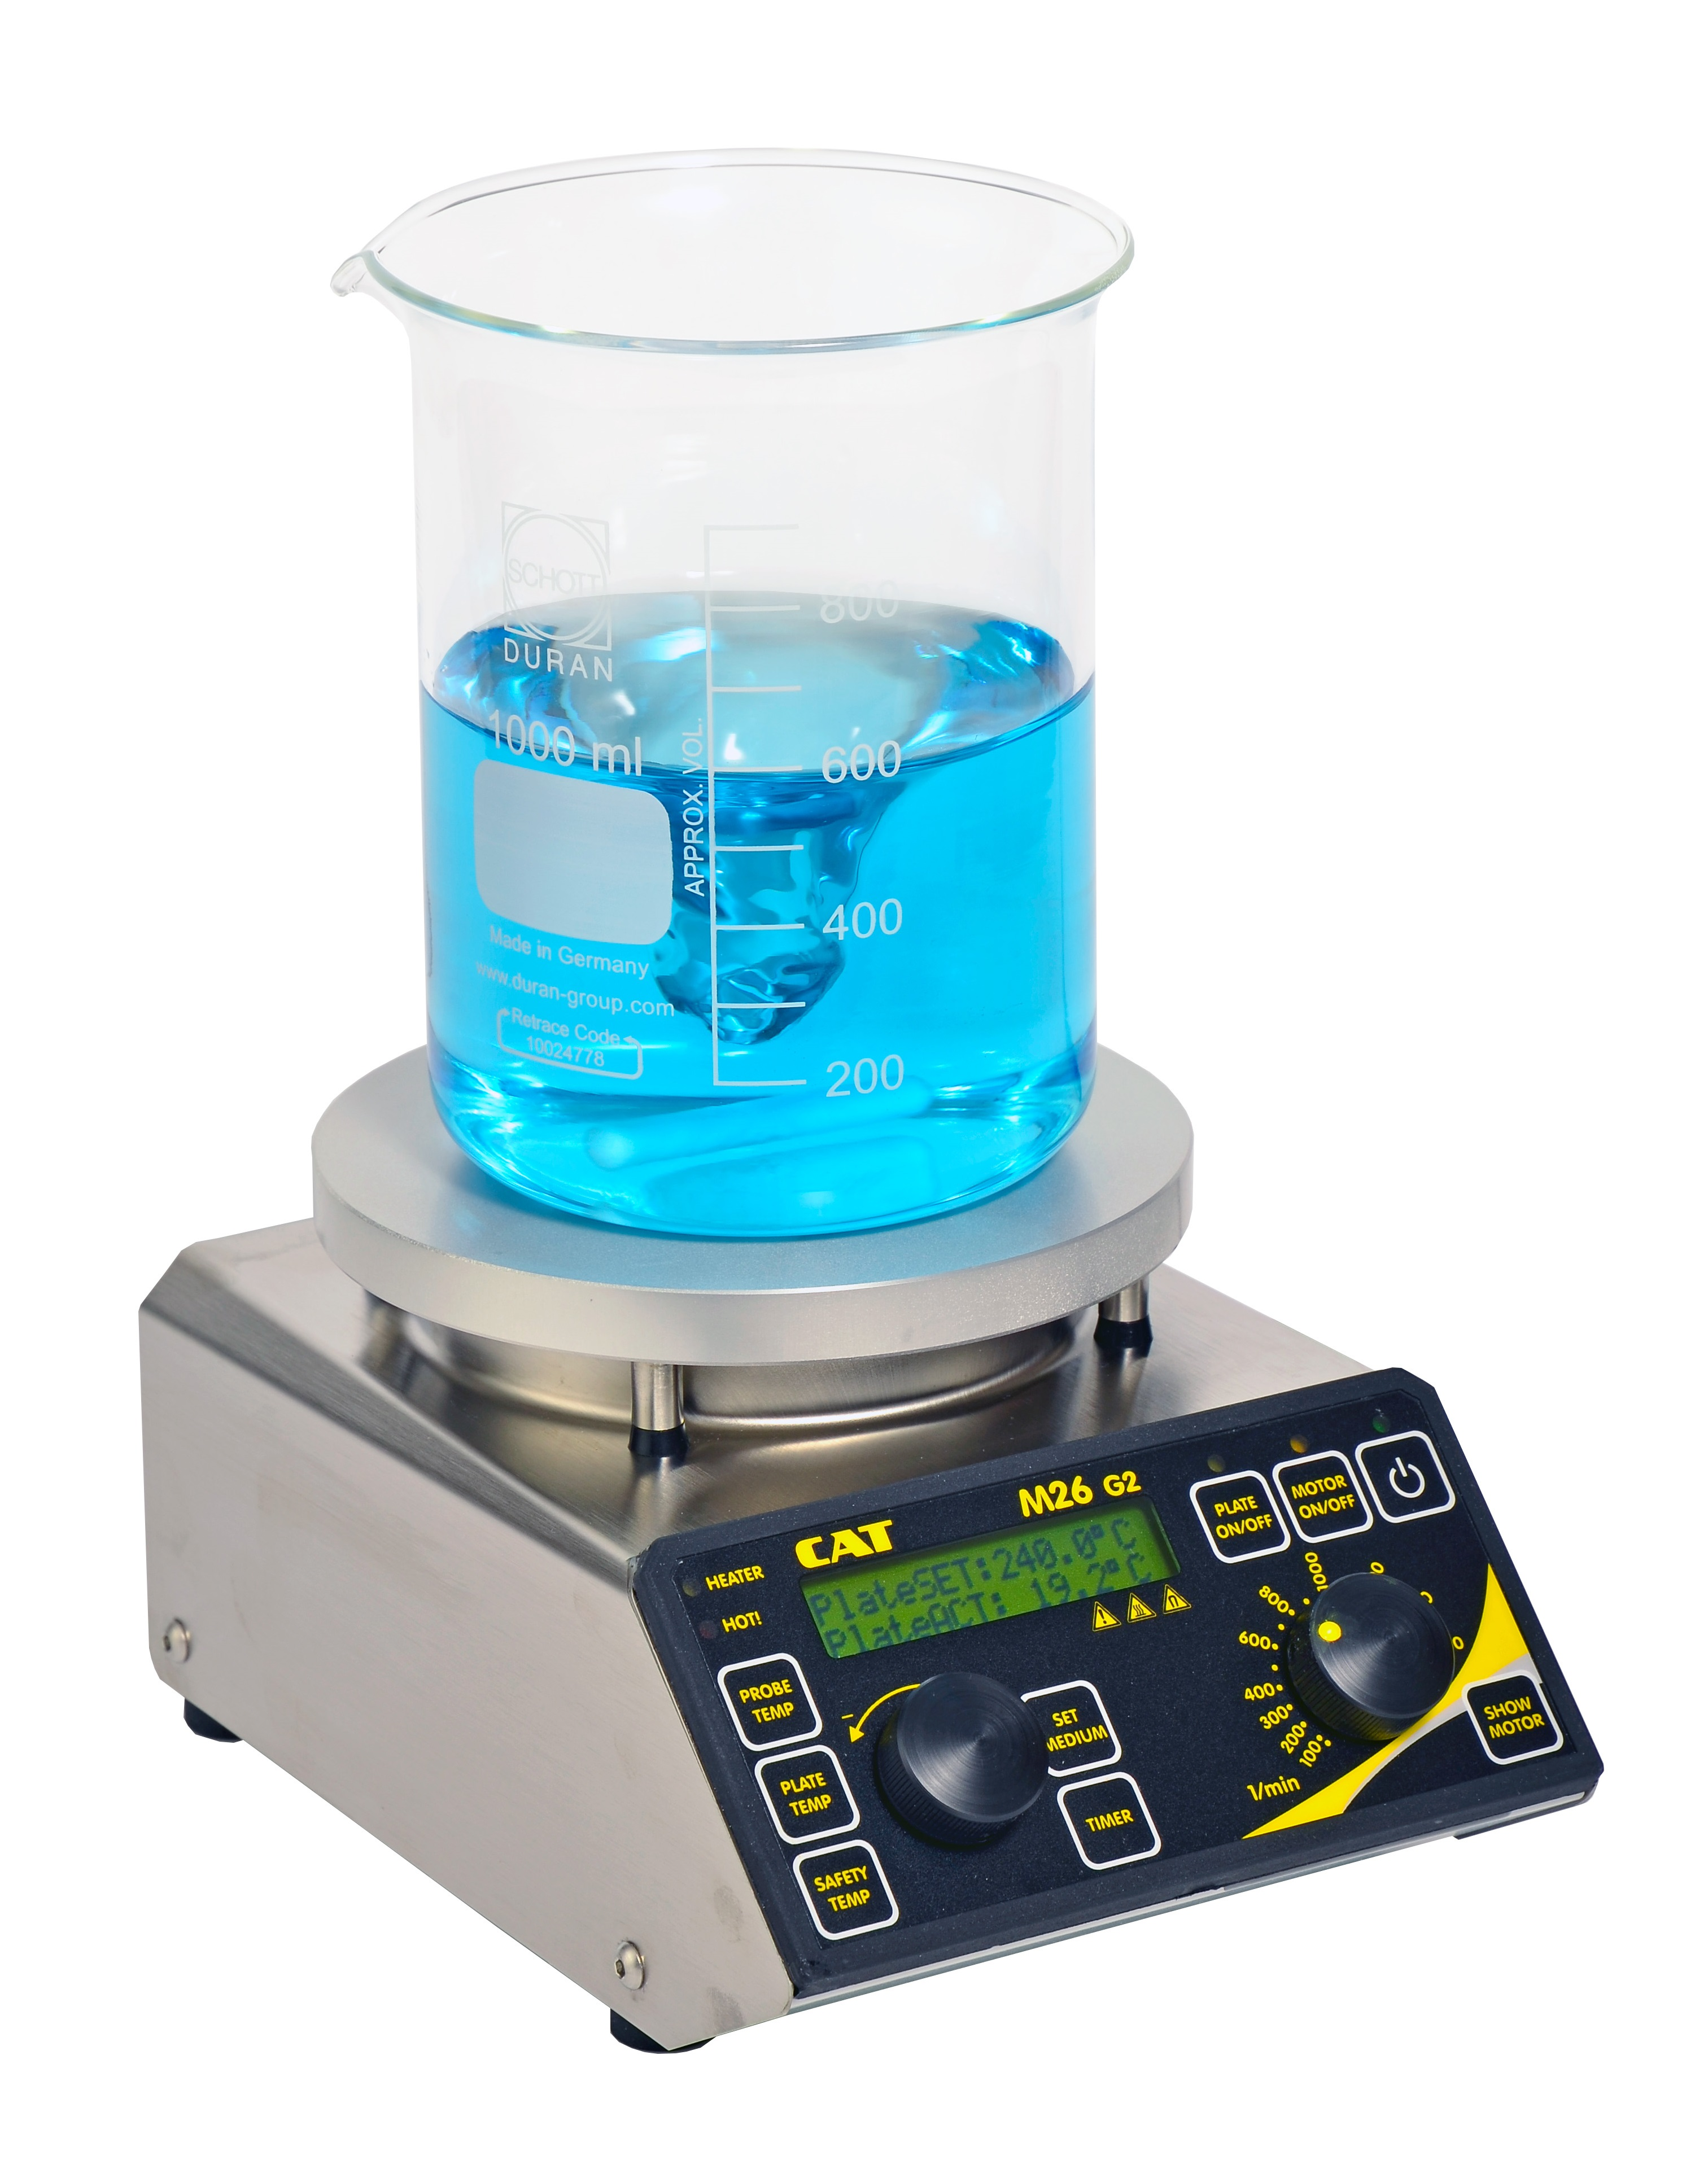 CAT Hotplate Magnetic Stirrers